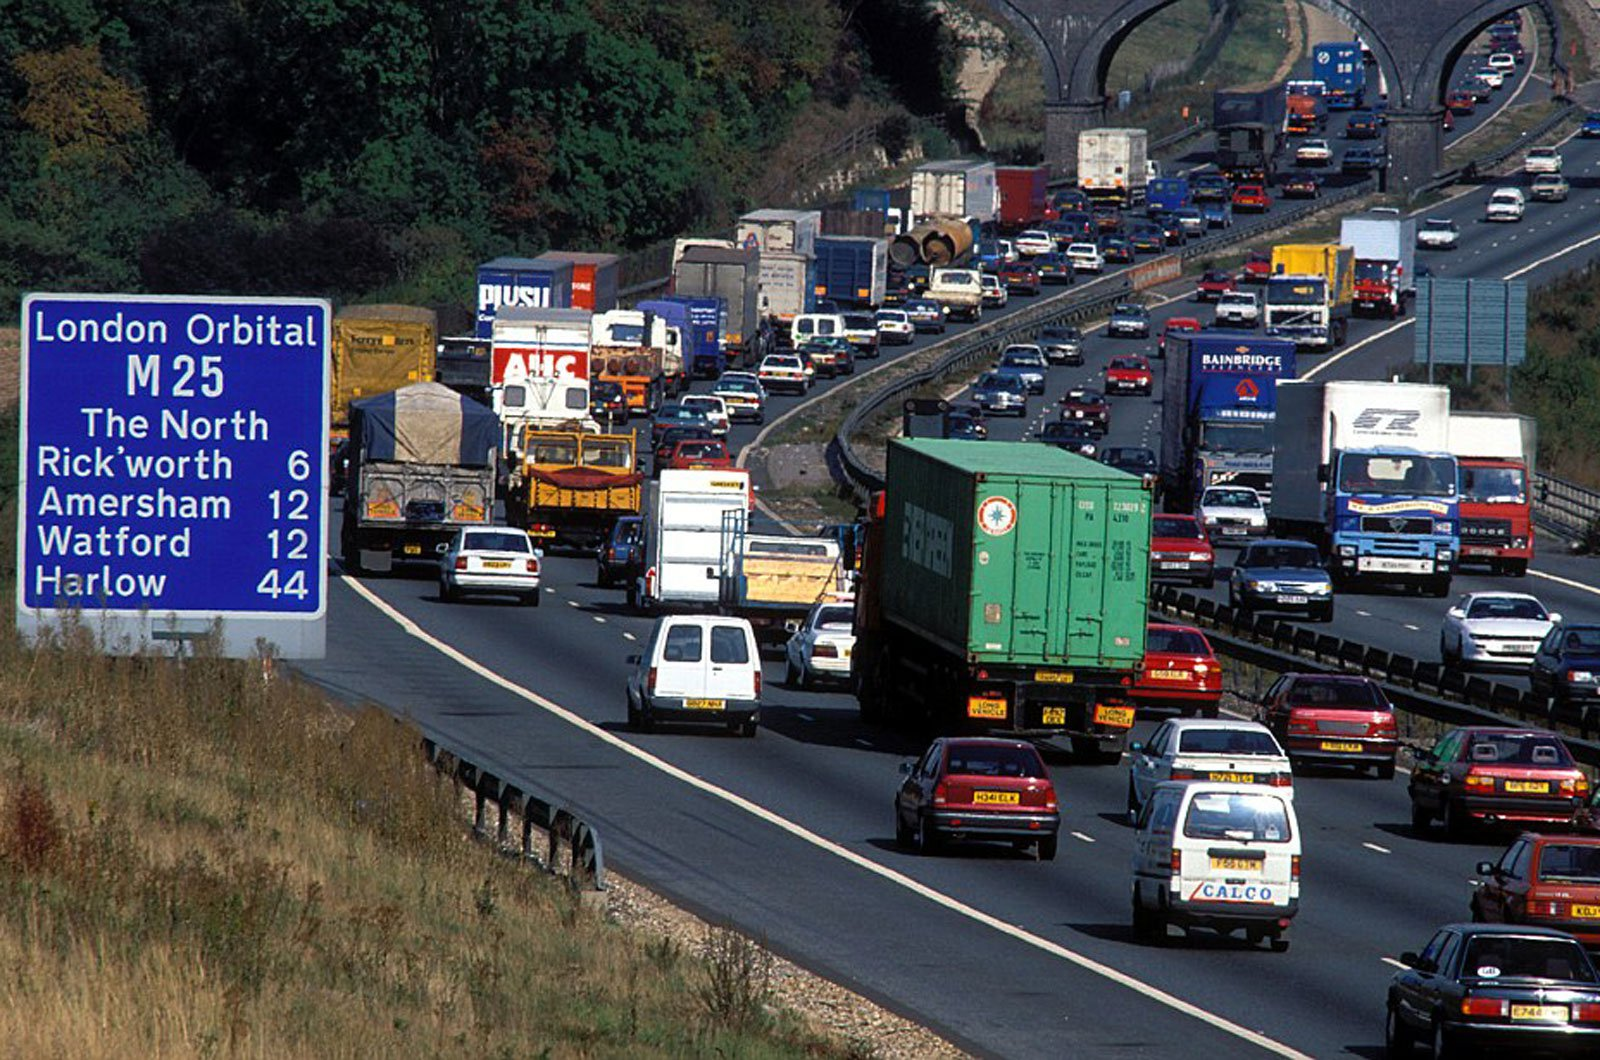 Traffic jam on the M25